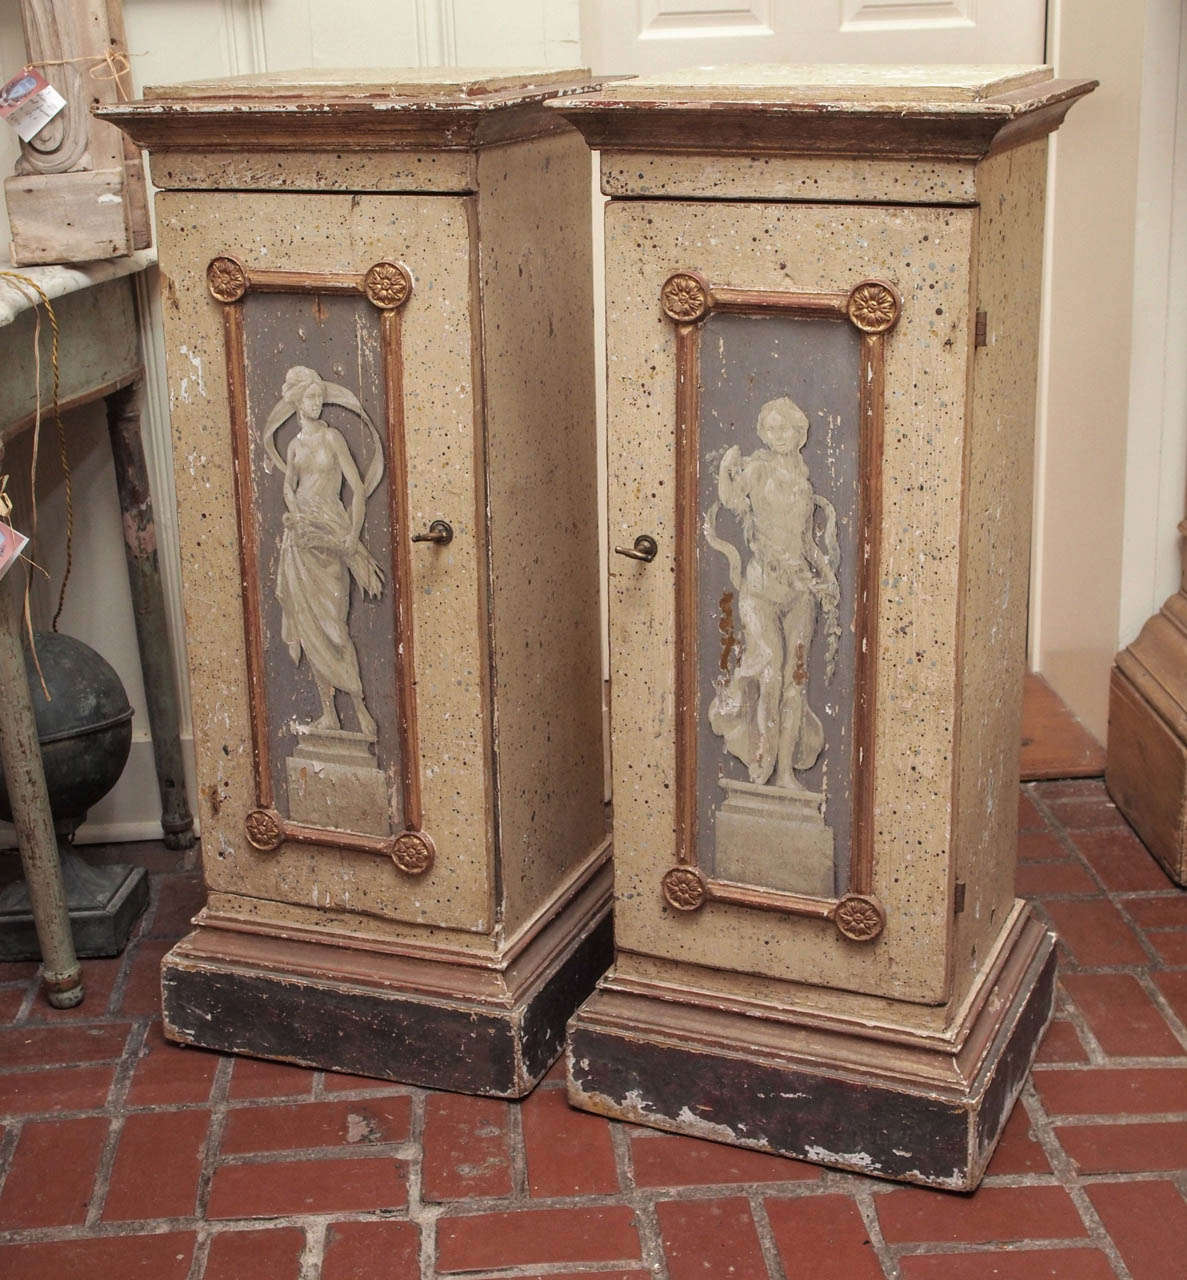 A pair of 19th century Italian painted plinths with faux bas relief motifs and giltwood accents. They are actually cabinets with one interior shelf. Original hardware and keys.